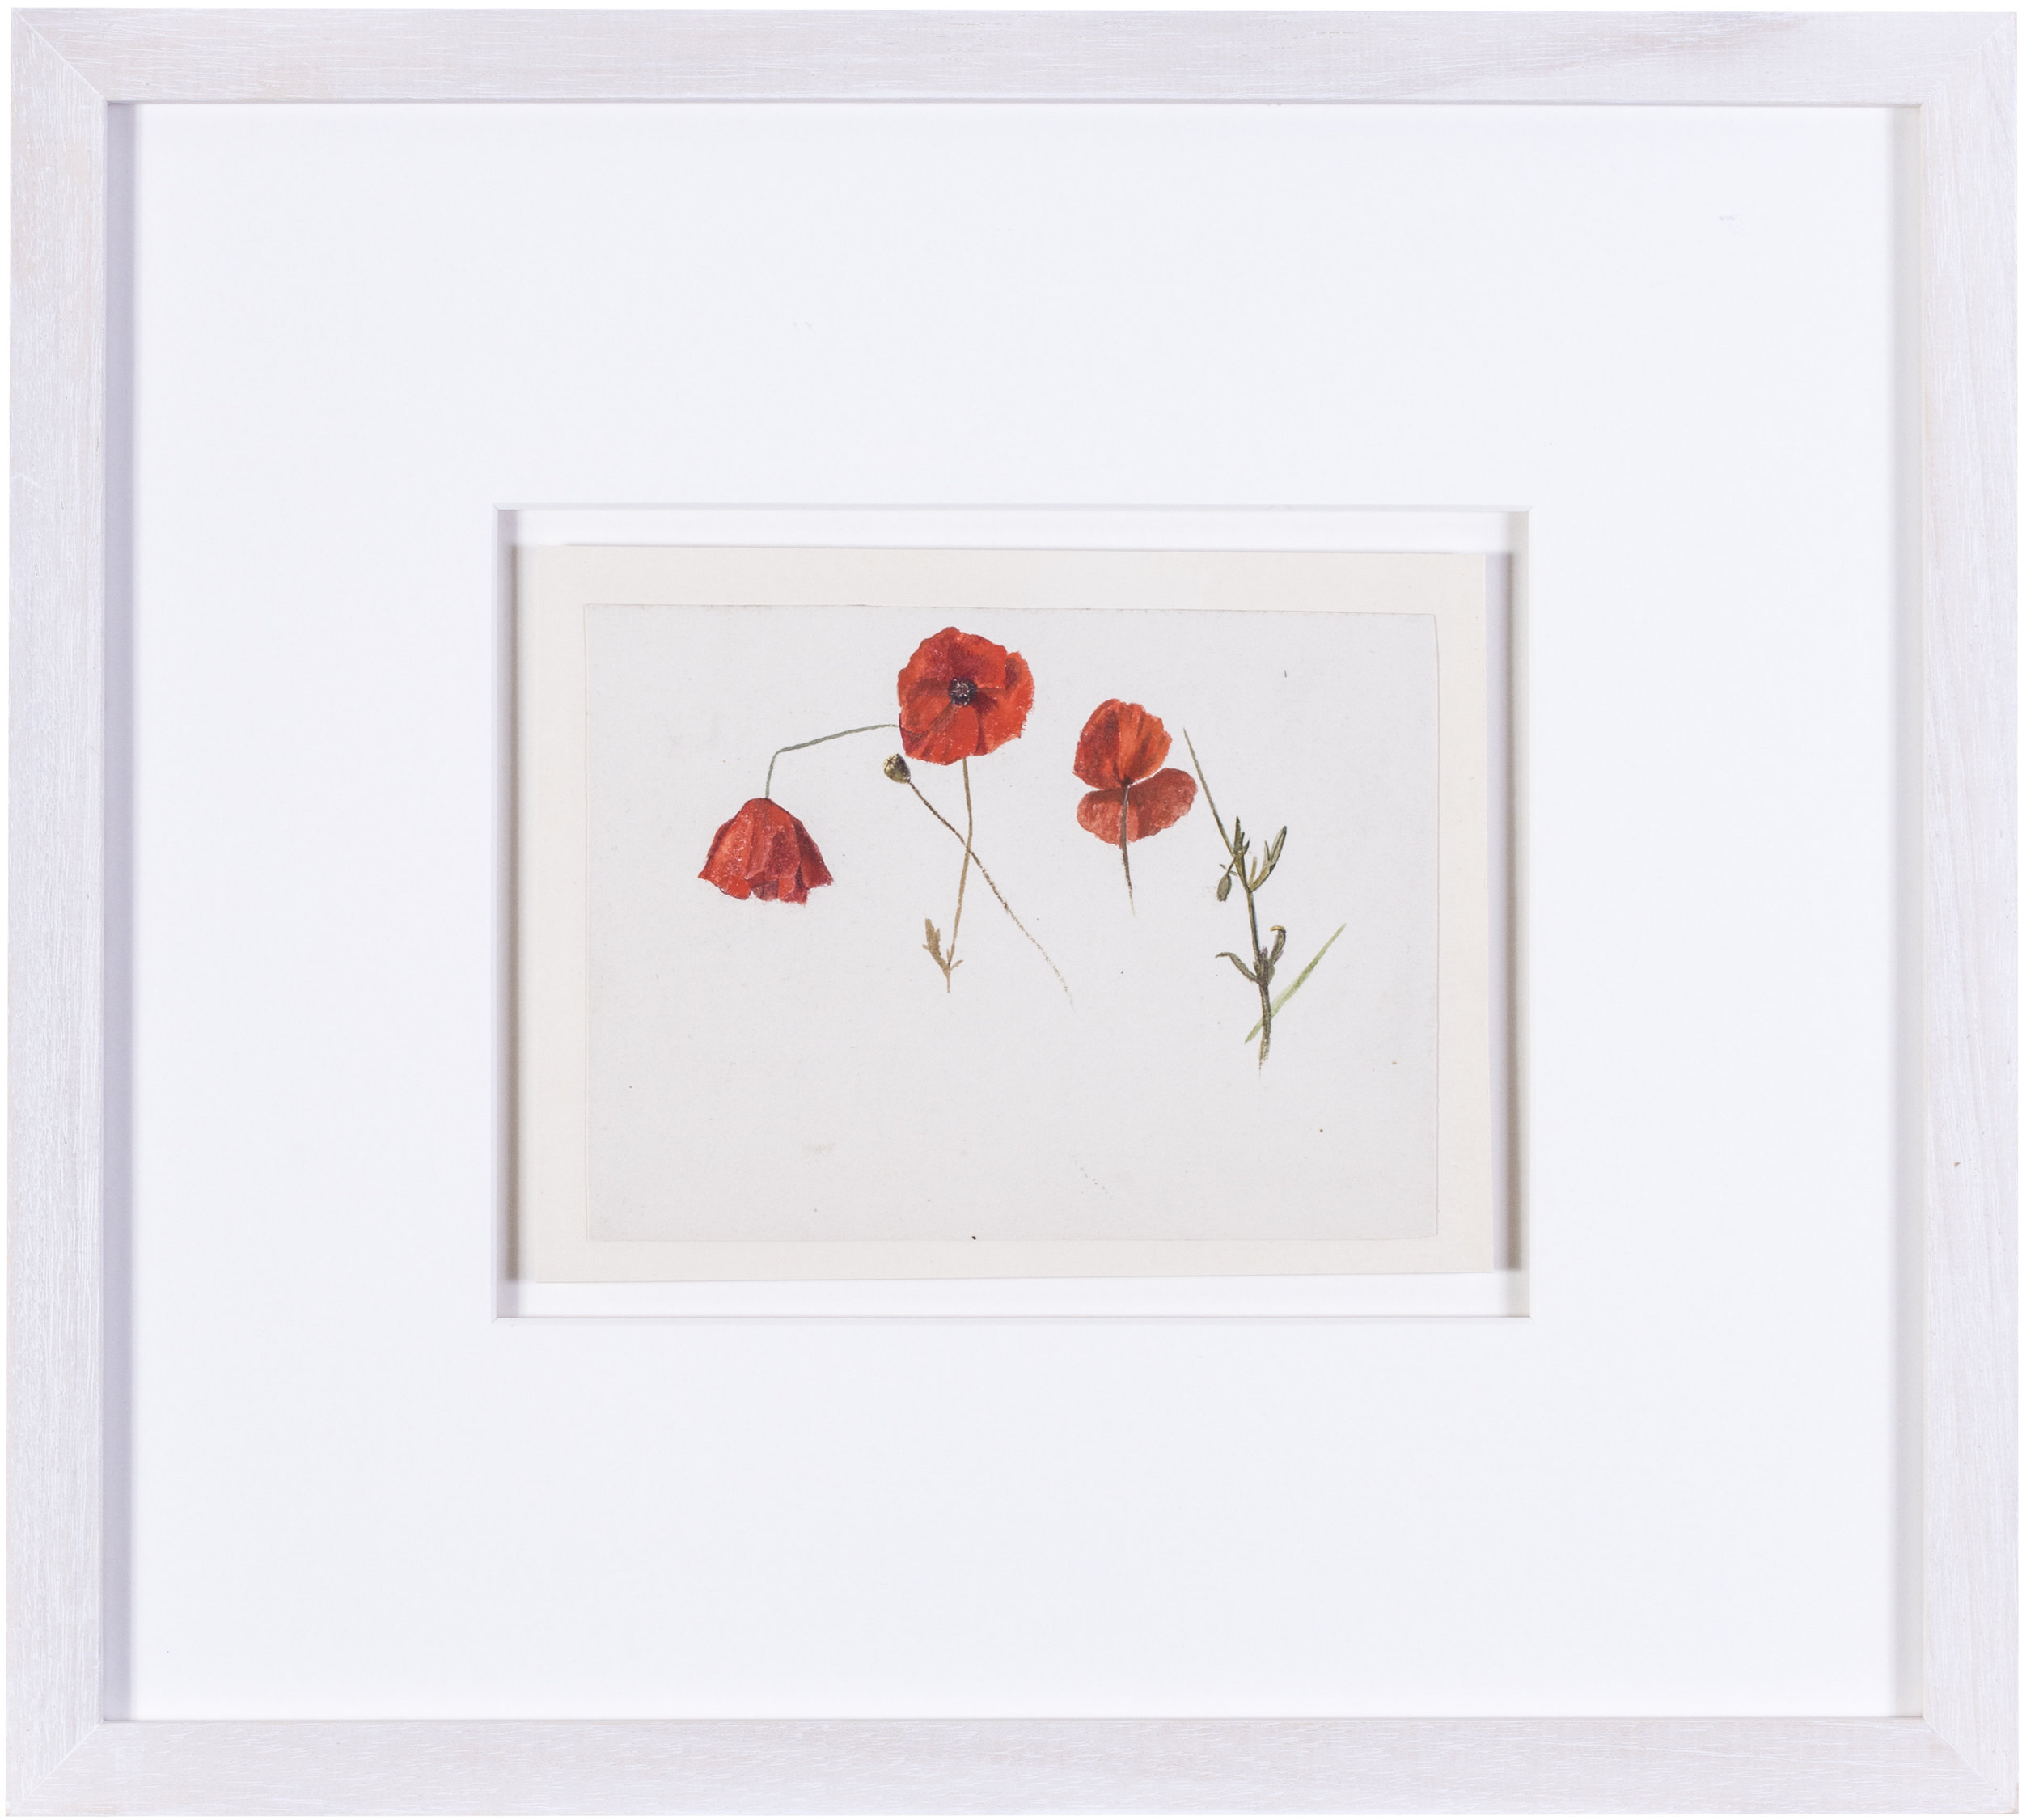 Poppies    watercolour on paper  5.1/2 x 7.1/2 in. (14 x 20 cm.)  Provenance: The Clayton-Stamm Collection.  Dominic Winter, Cirencester, 8thNovember 2018, lot 464  £900